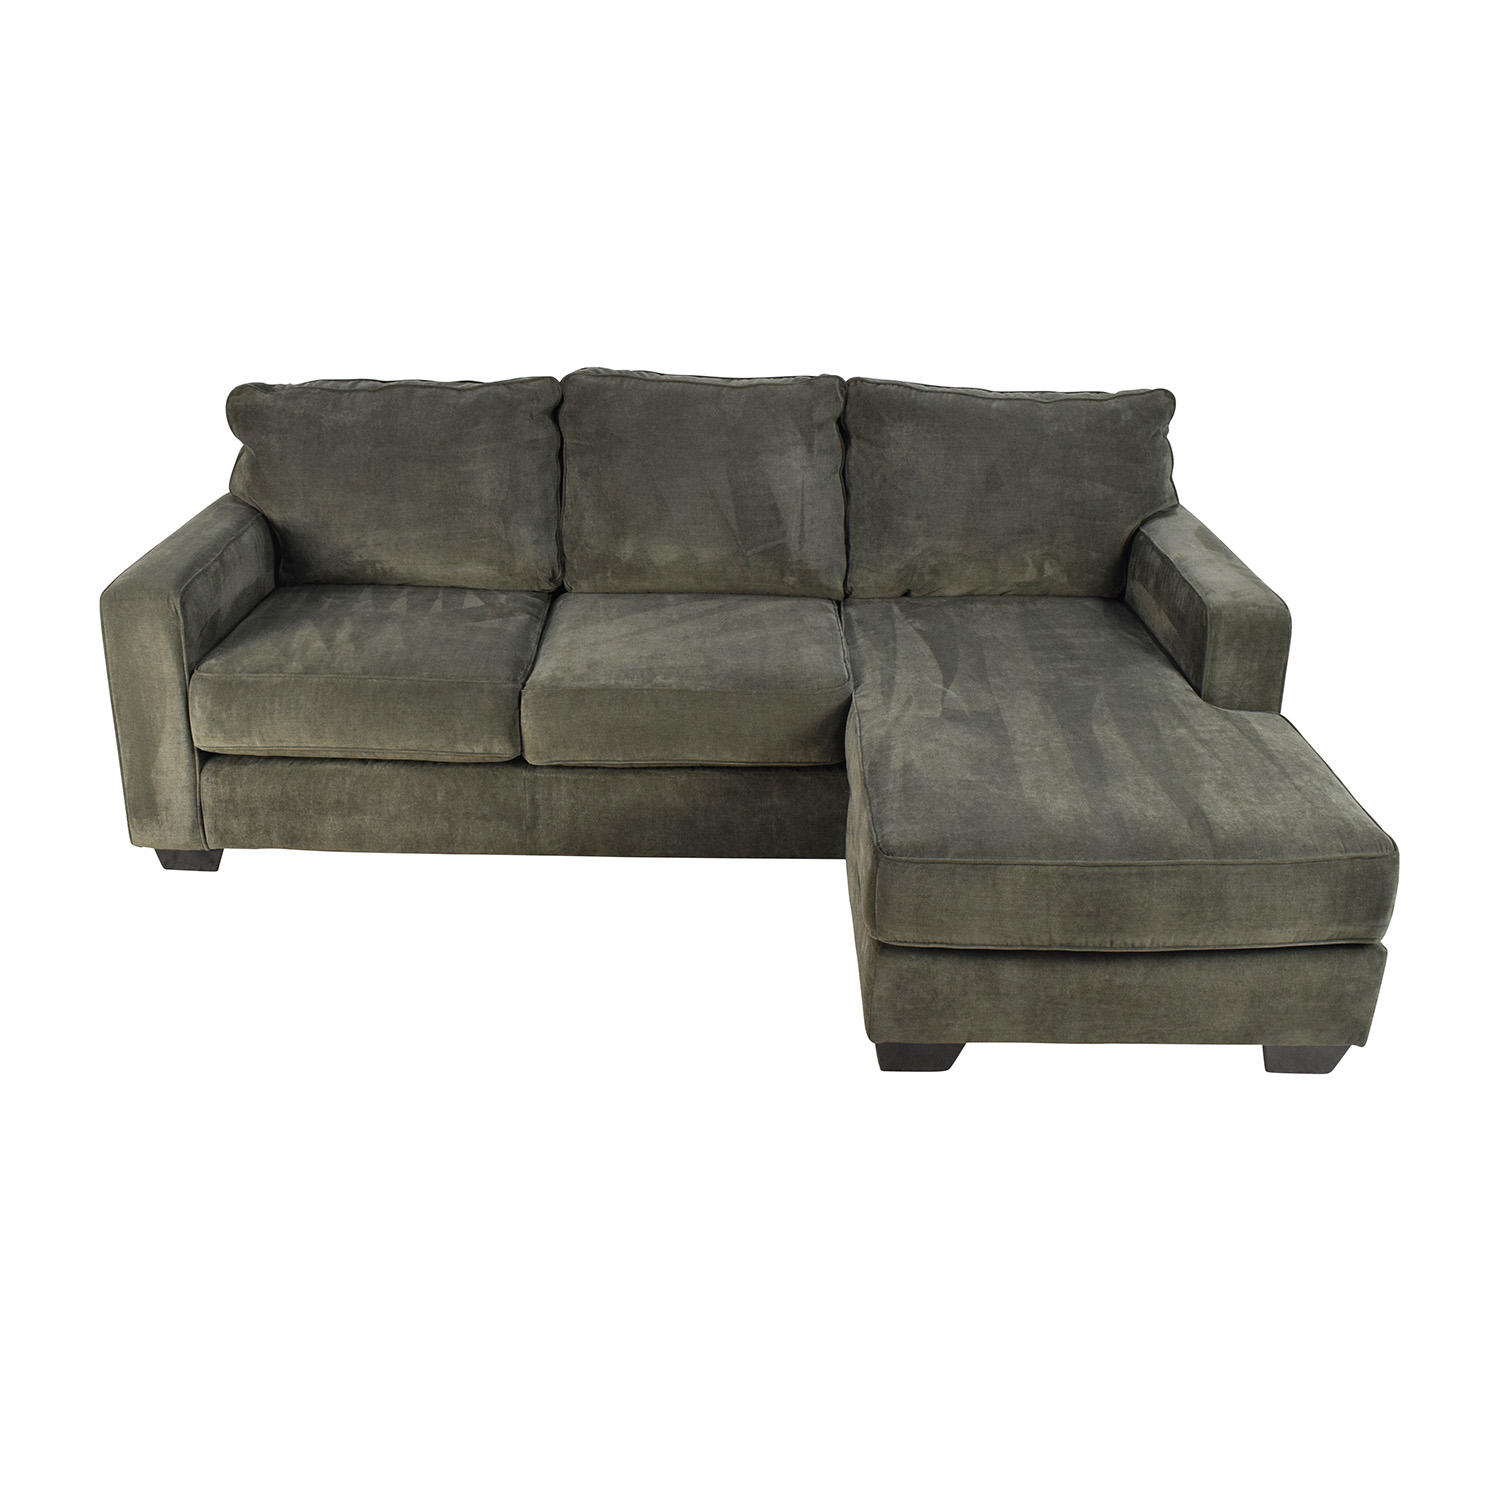 shop Jennifer Convertibles Jennifer Convertibles Sectional Sofa online